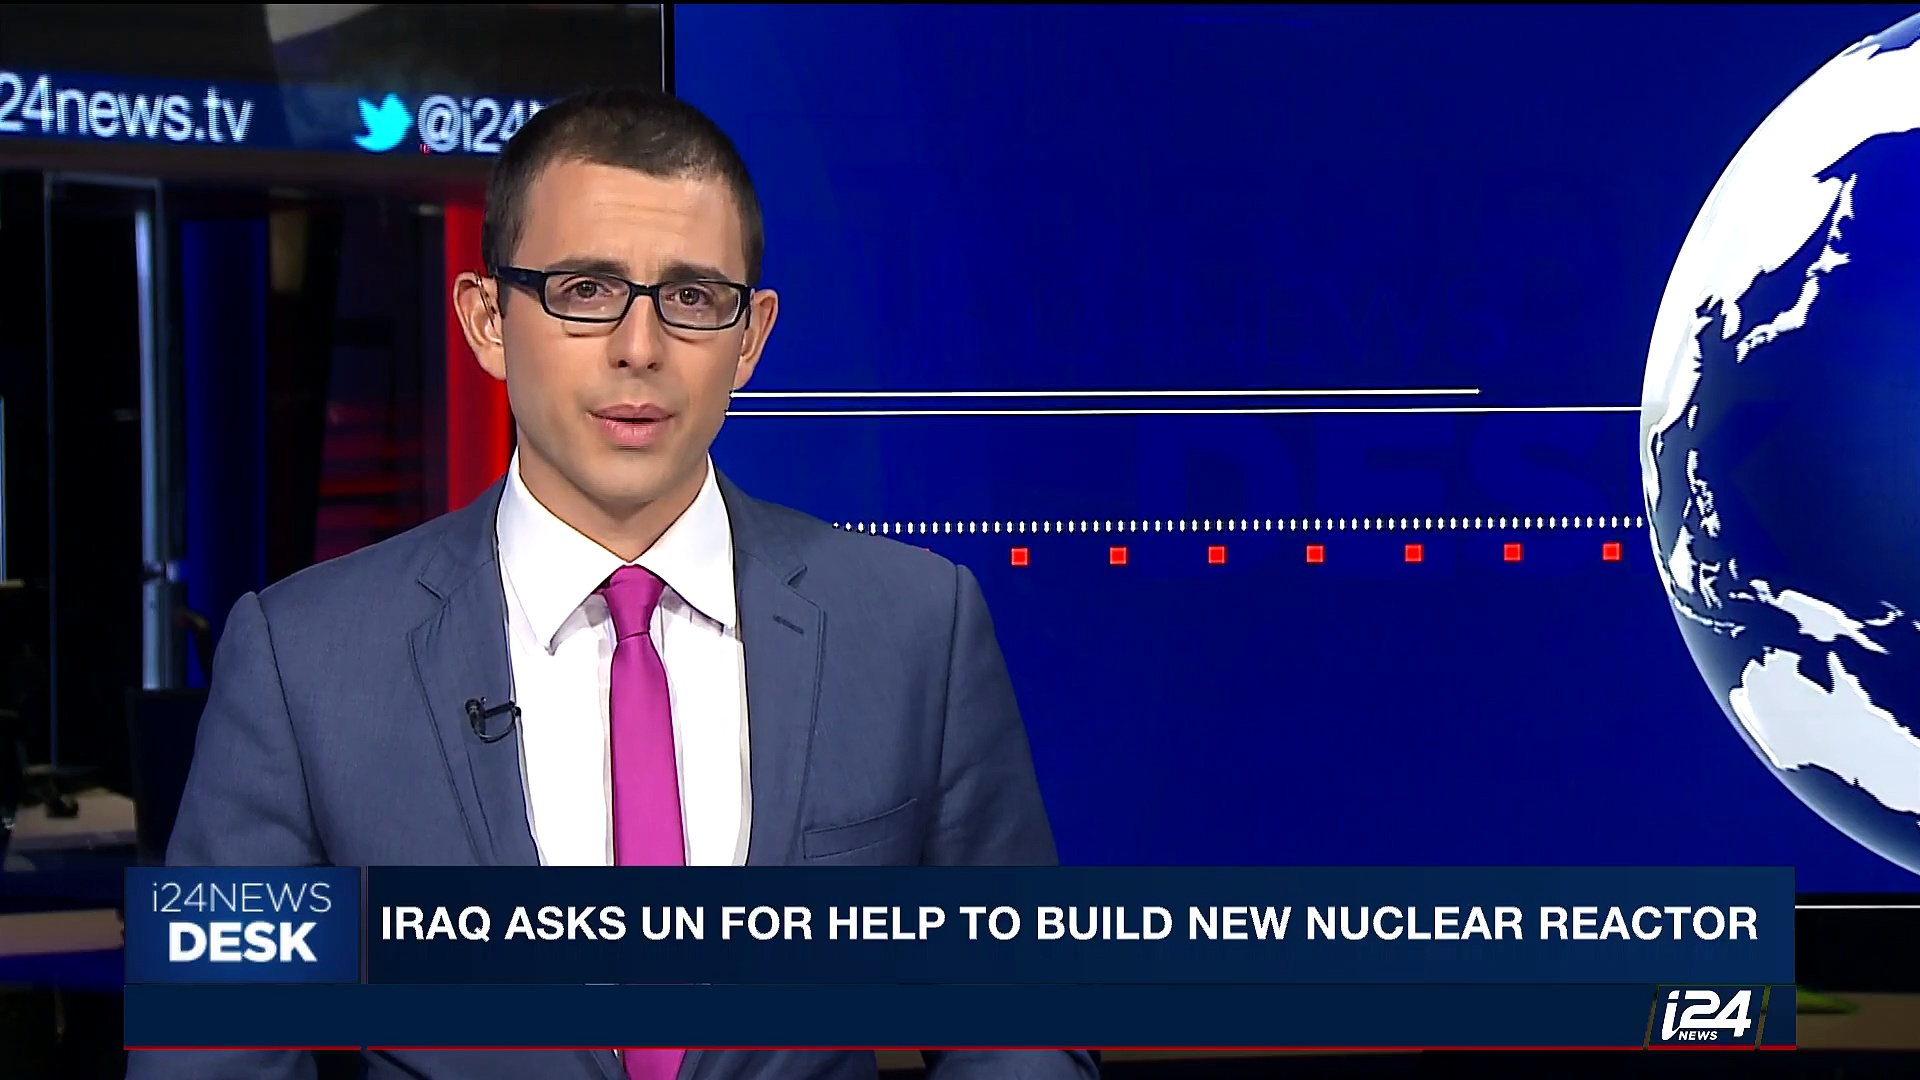 i24NEWS DESK | Iraq asks UN for help to build new nuclear reactor | Saturday, September 23rd 2017